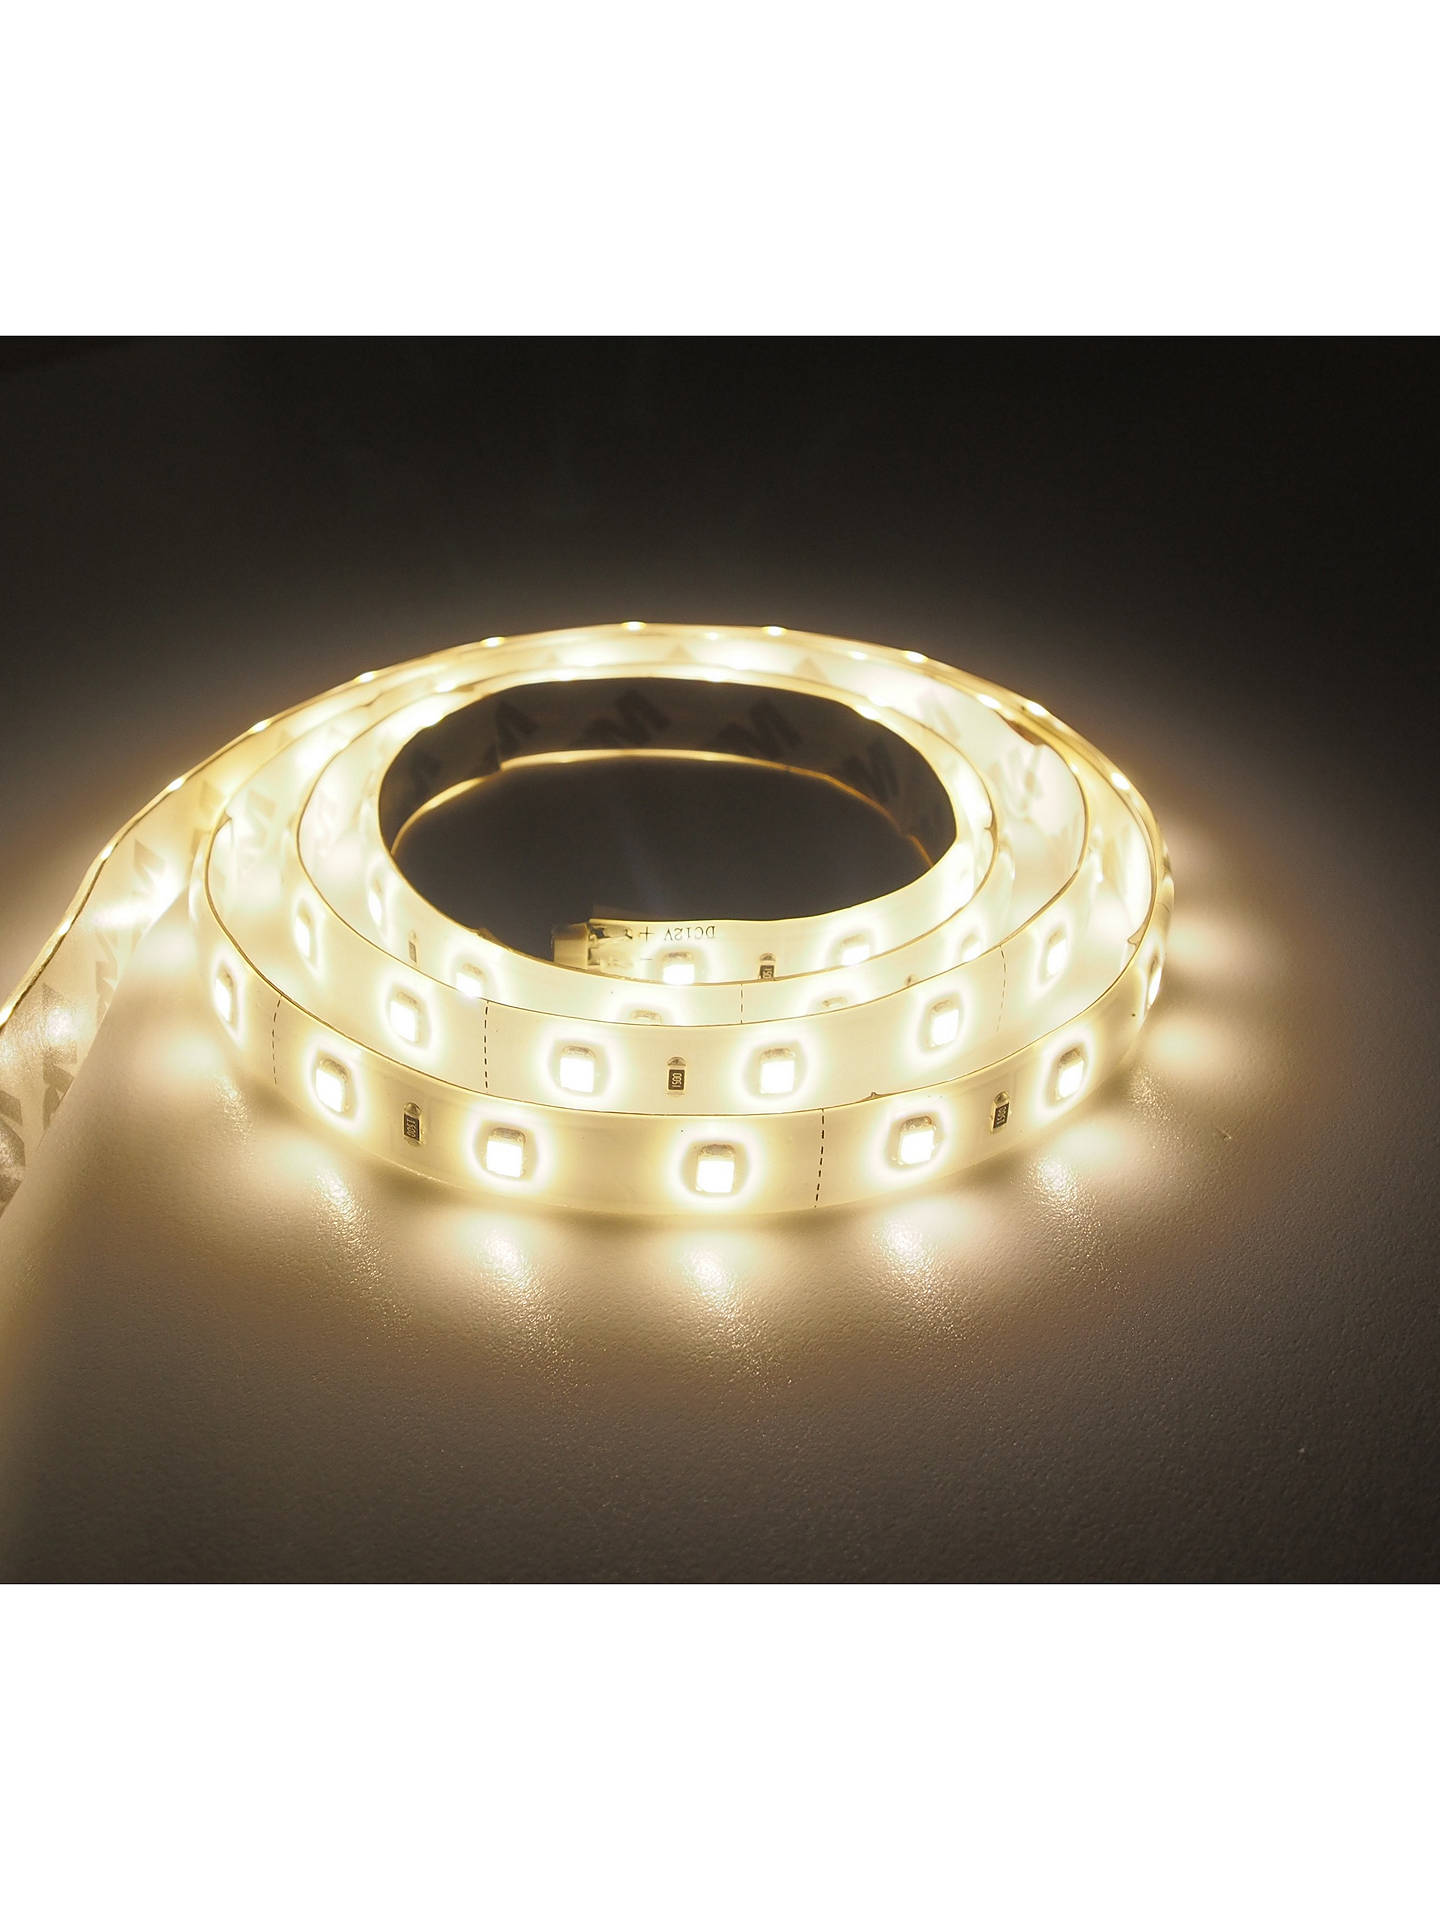 Buy John Lewis & Partners SY7339A 1m LED Strip Lights, Warm White Online at johnlewis.com